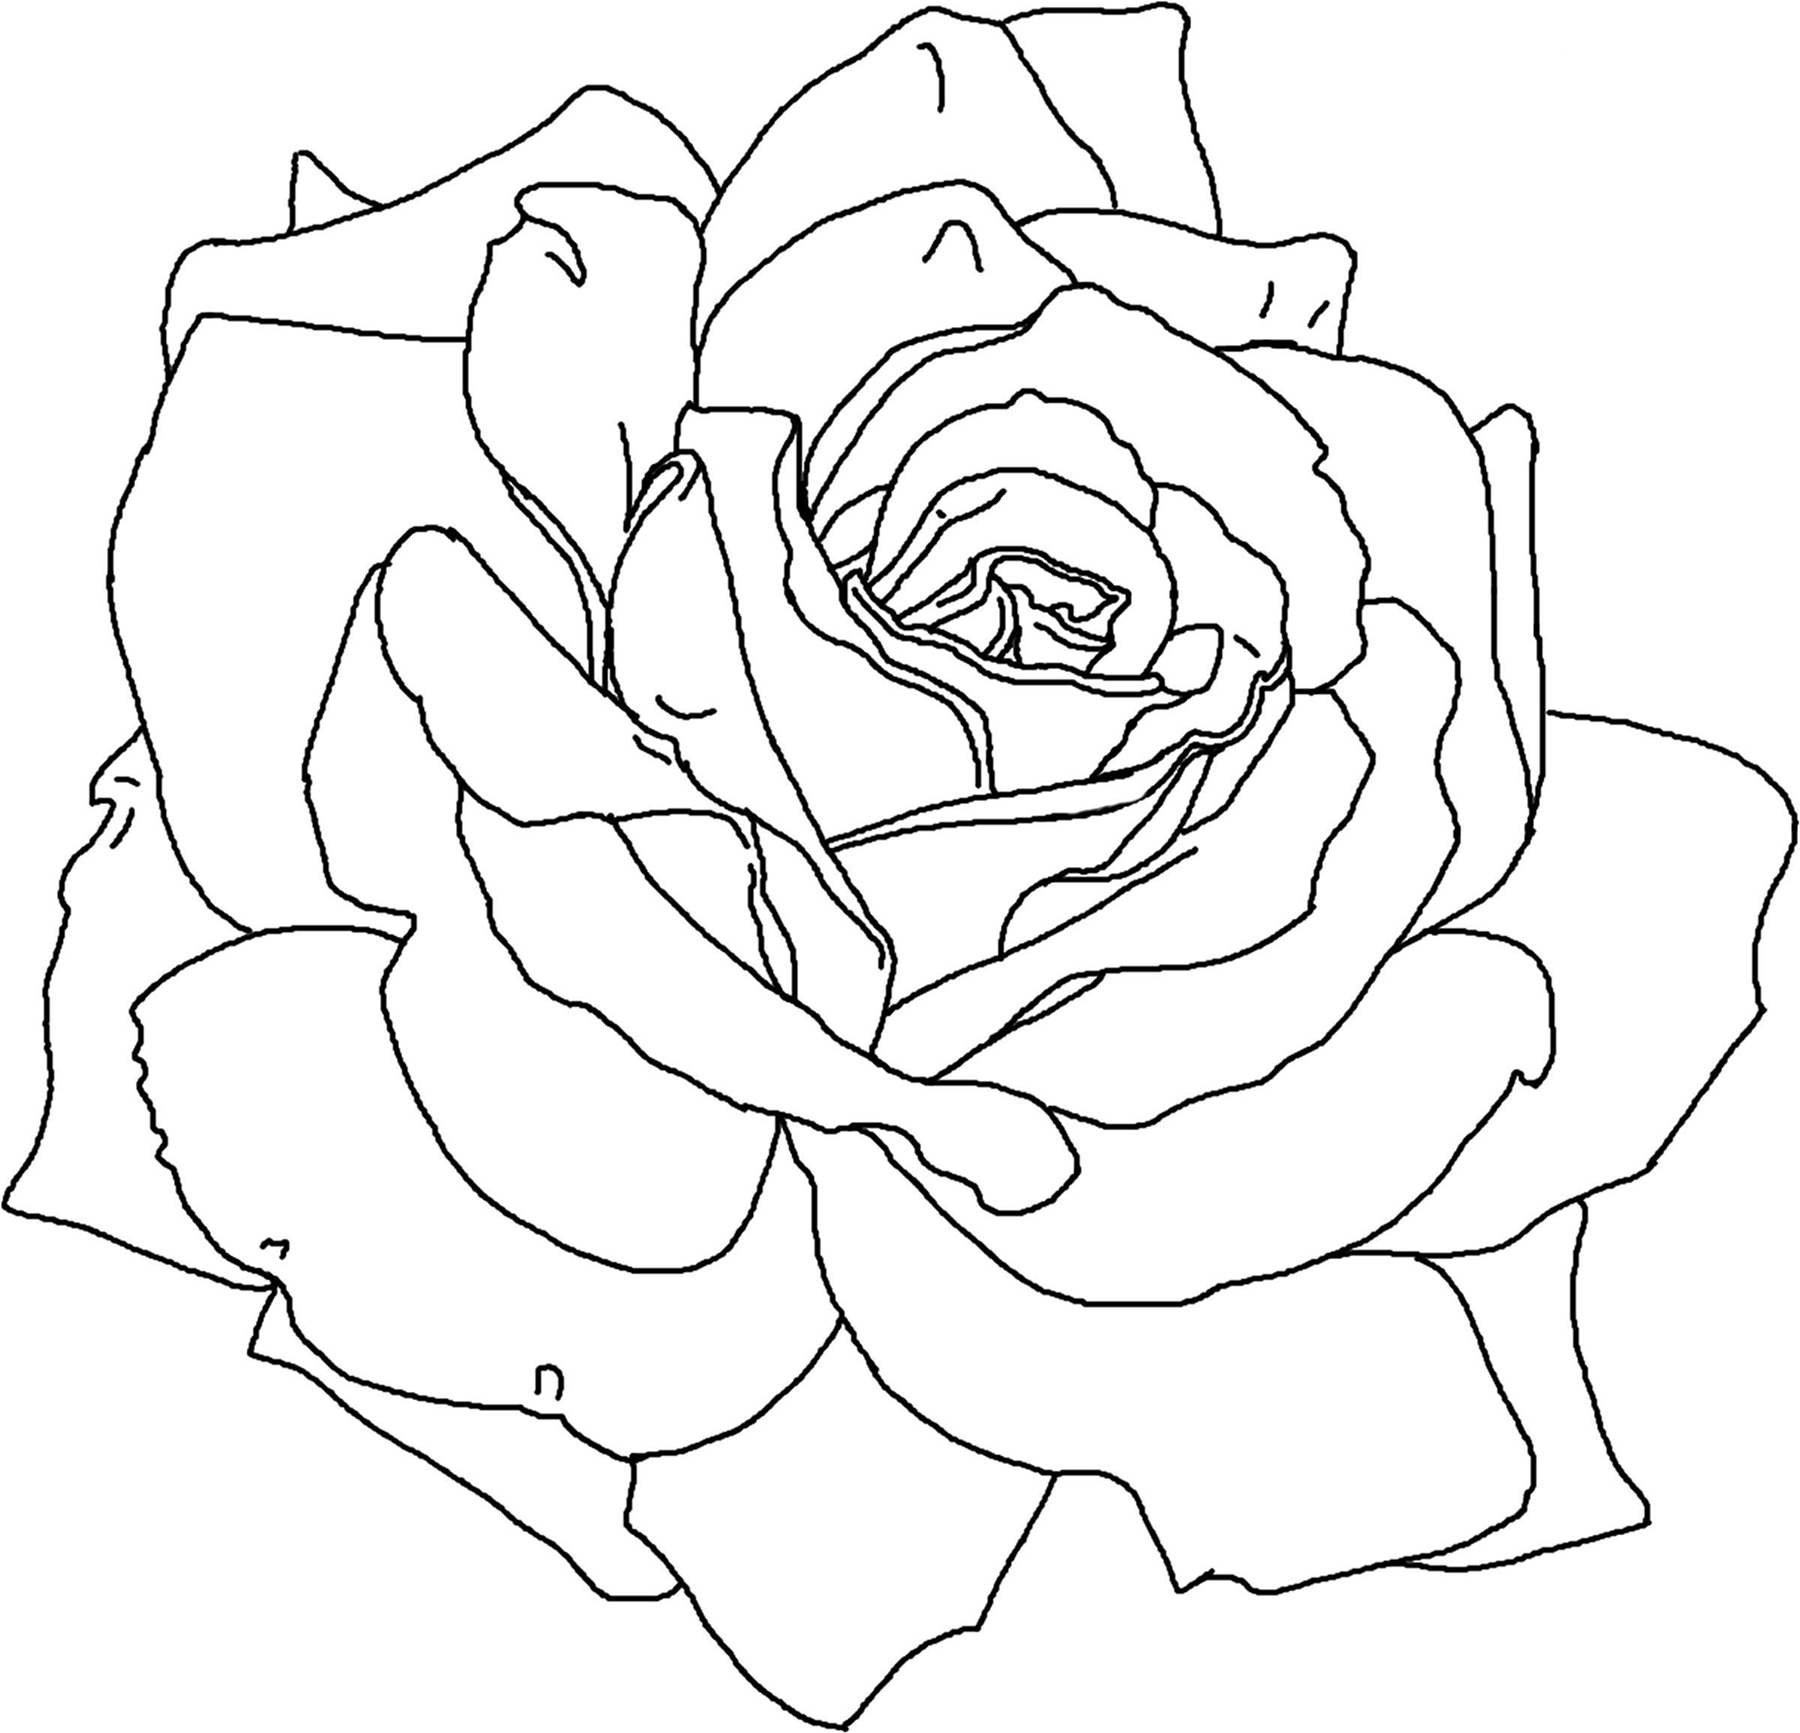 picture of flowers to colour free printable flower coloring pages for kids best colour flowers to of picture